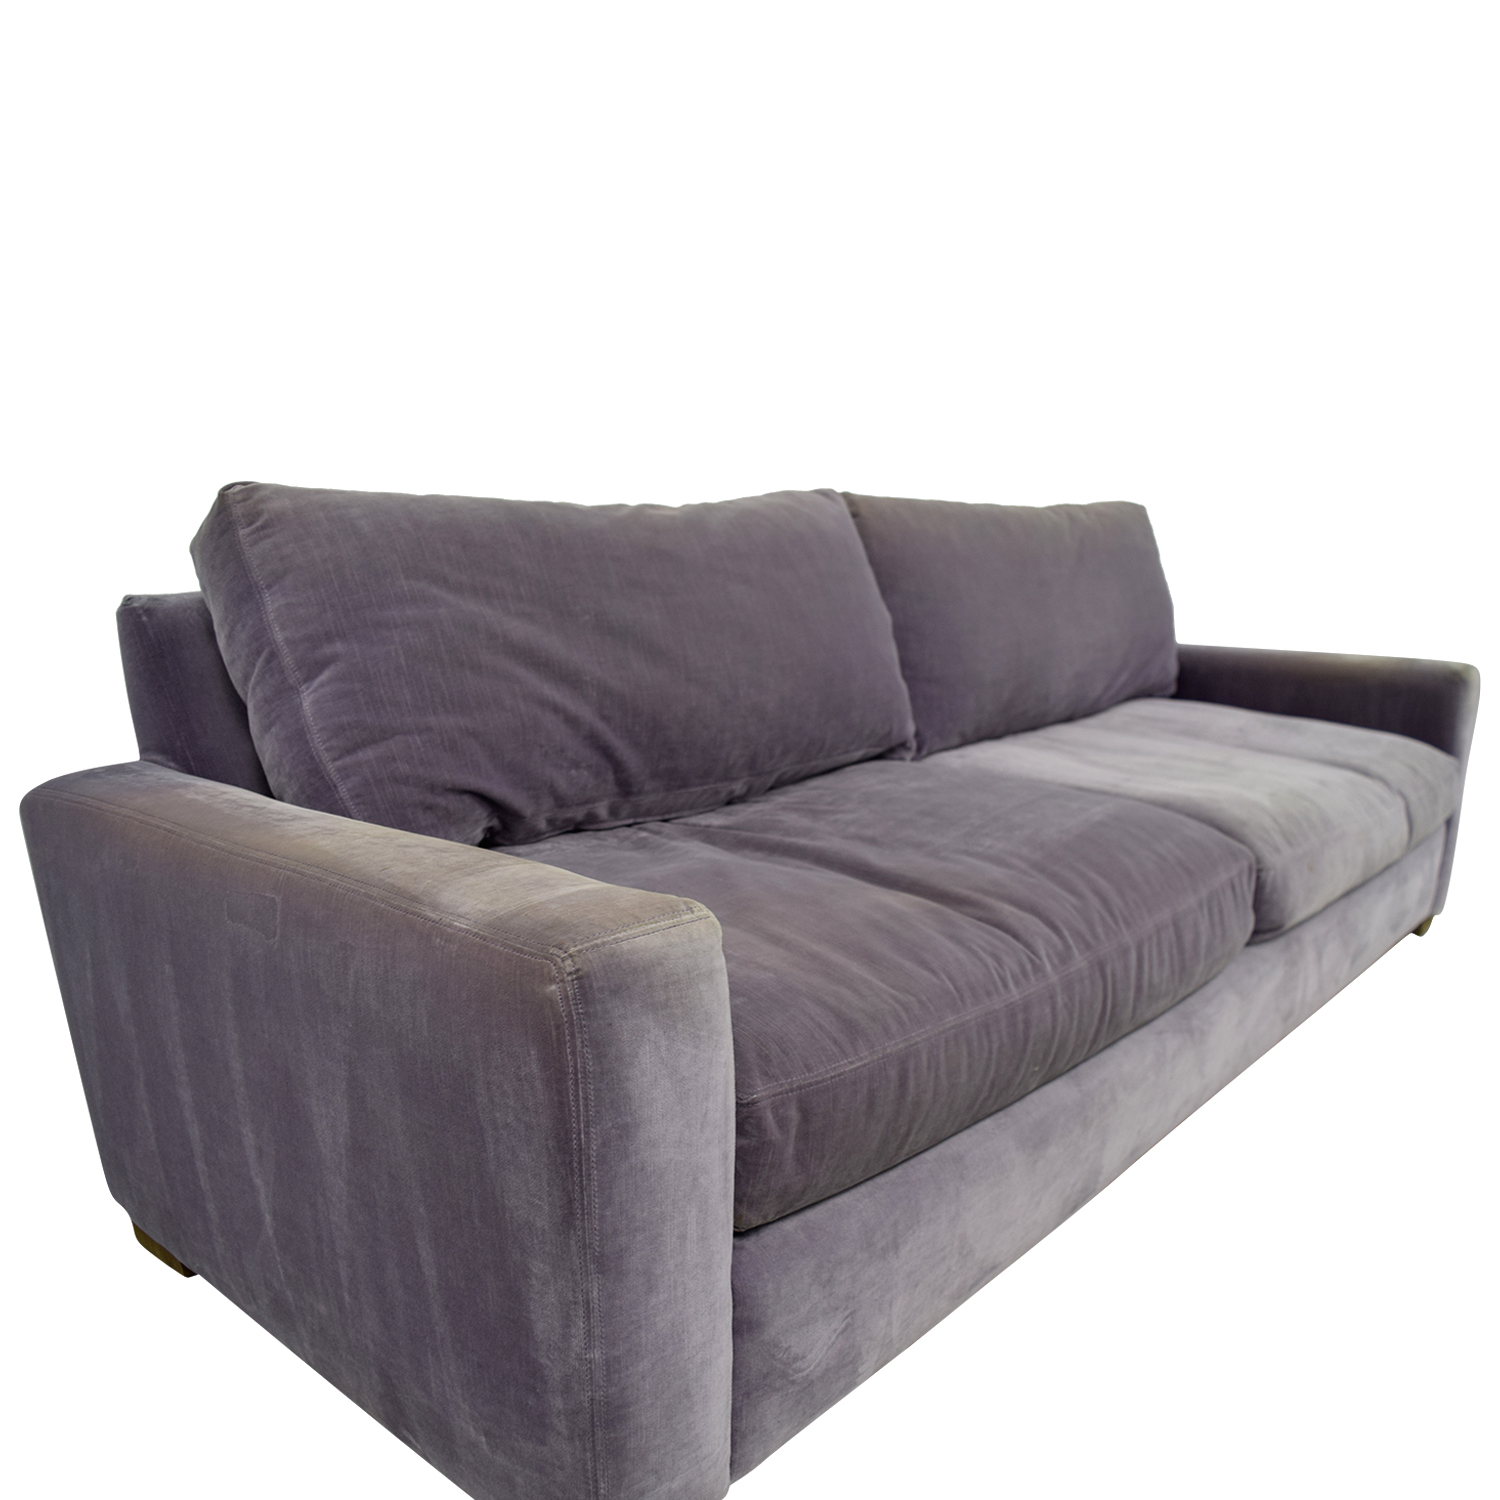 Down Filled Sofa Linen Slipcover Sofa Together With Down